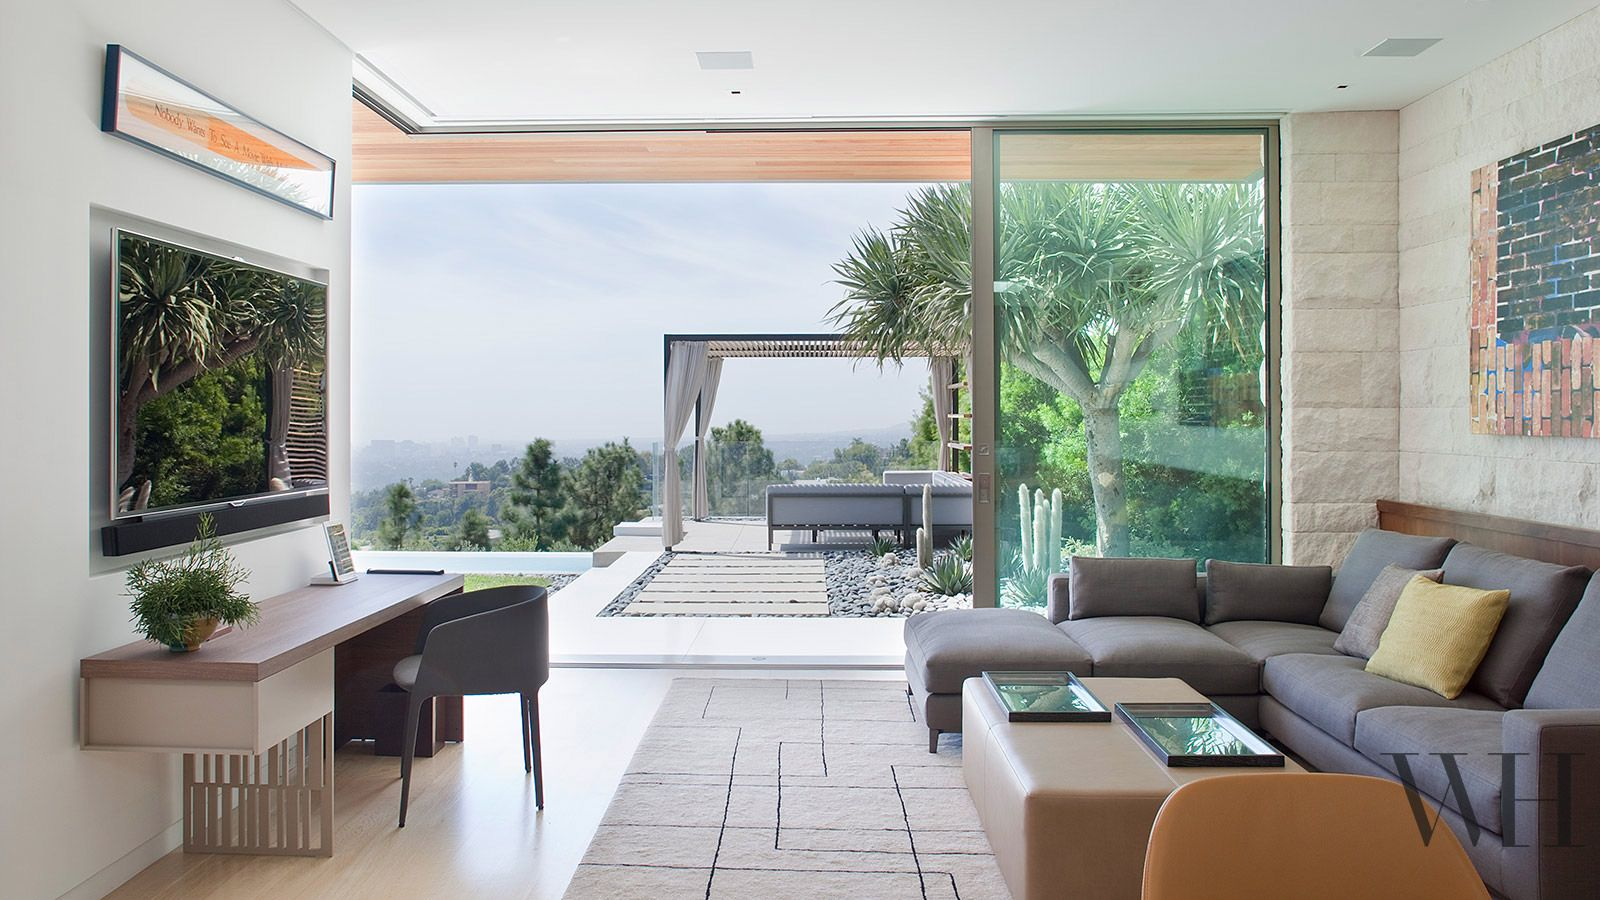 1000+ images about projects - contemporary on pinterest | alvar